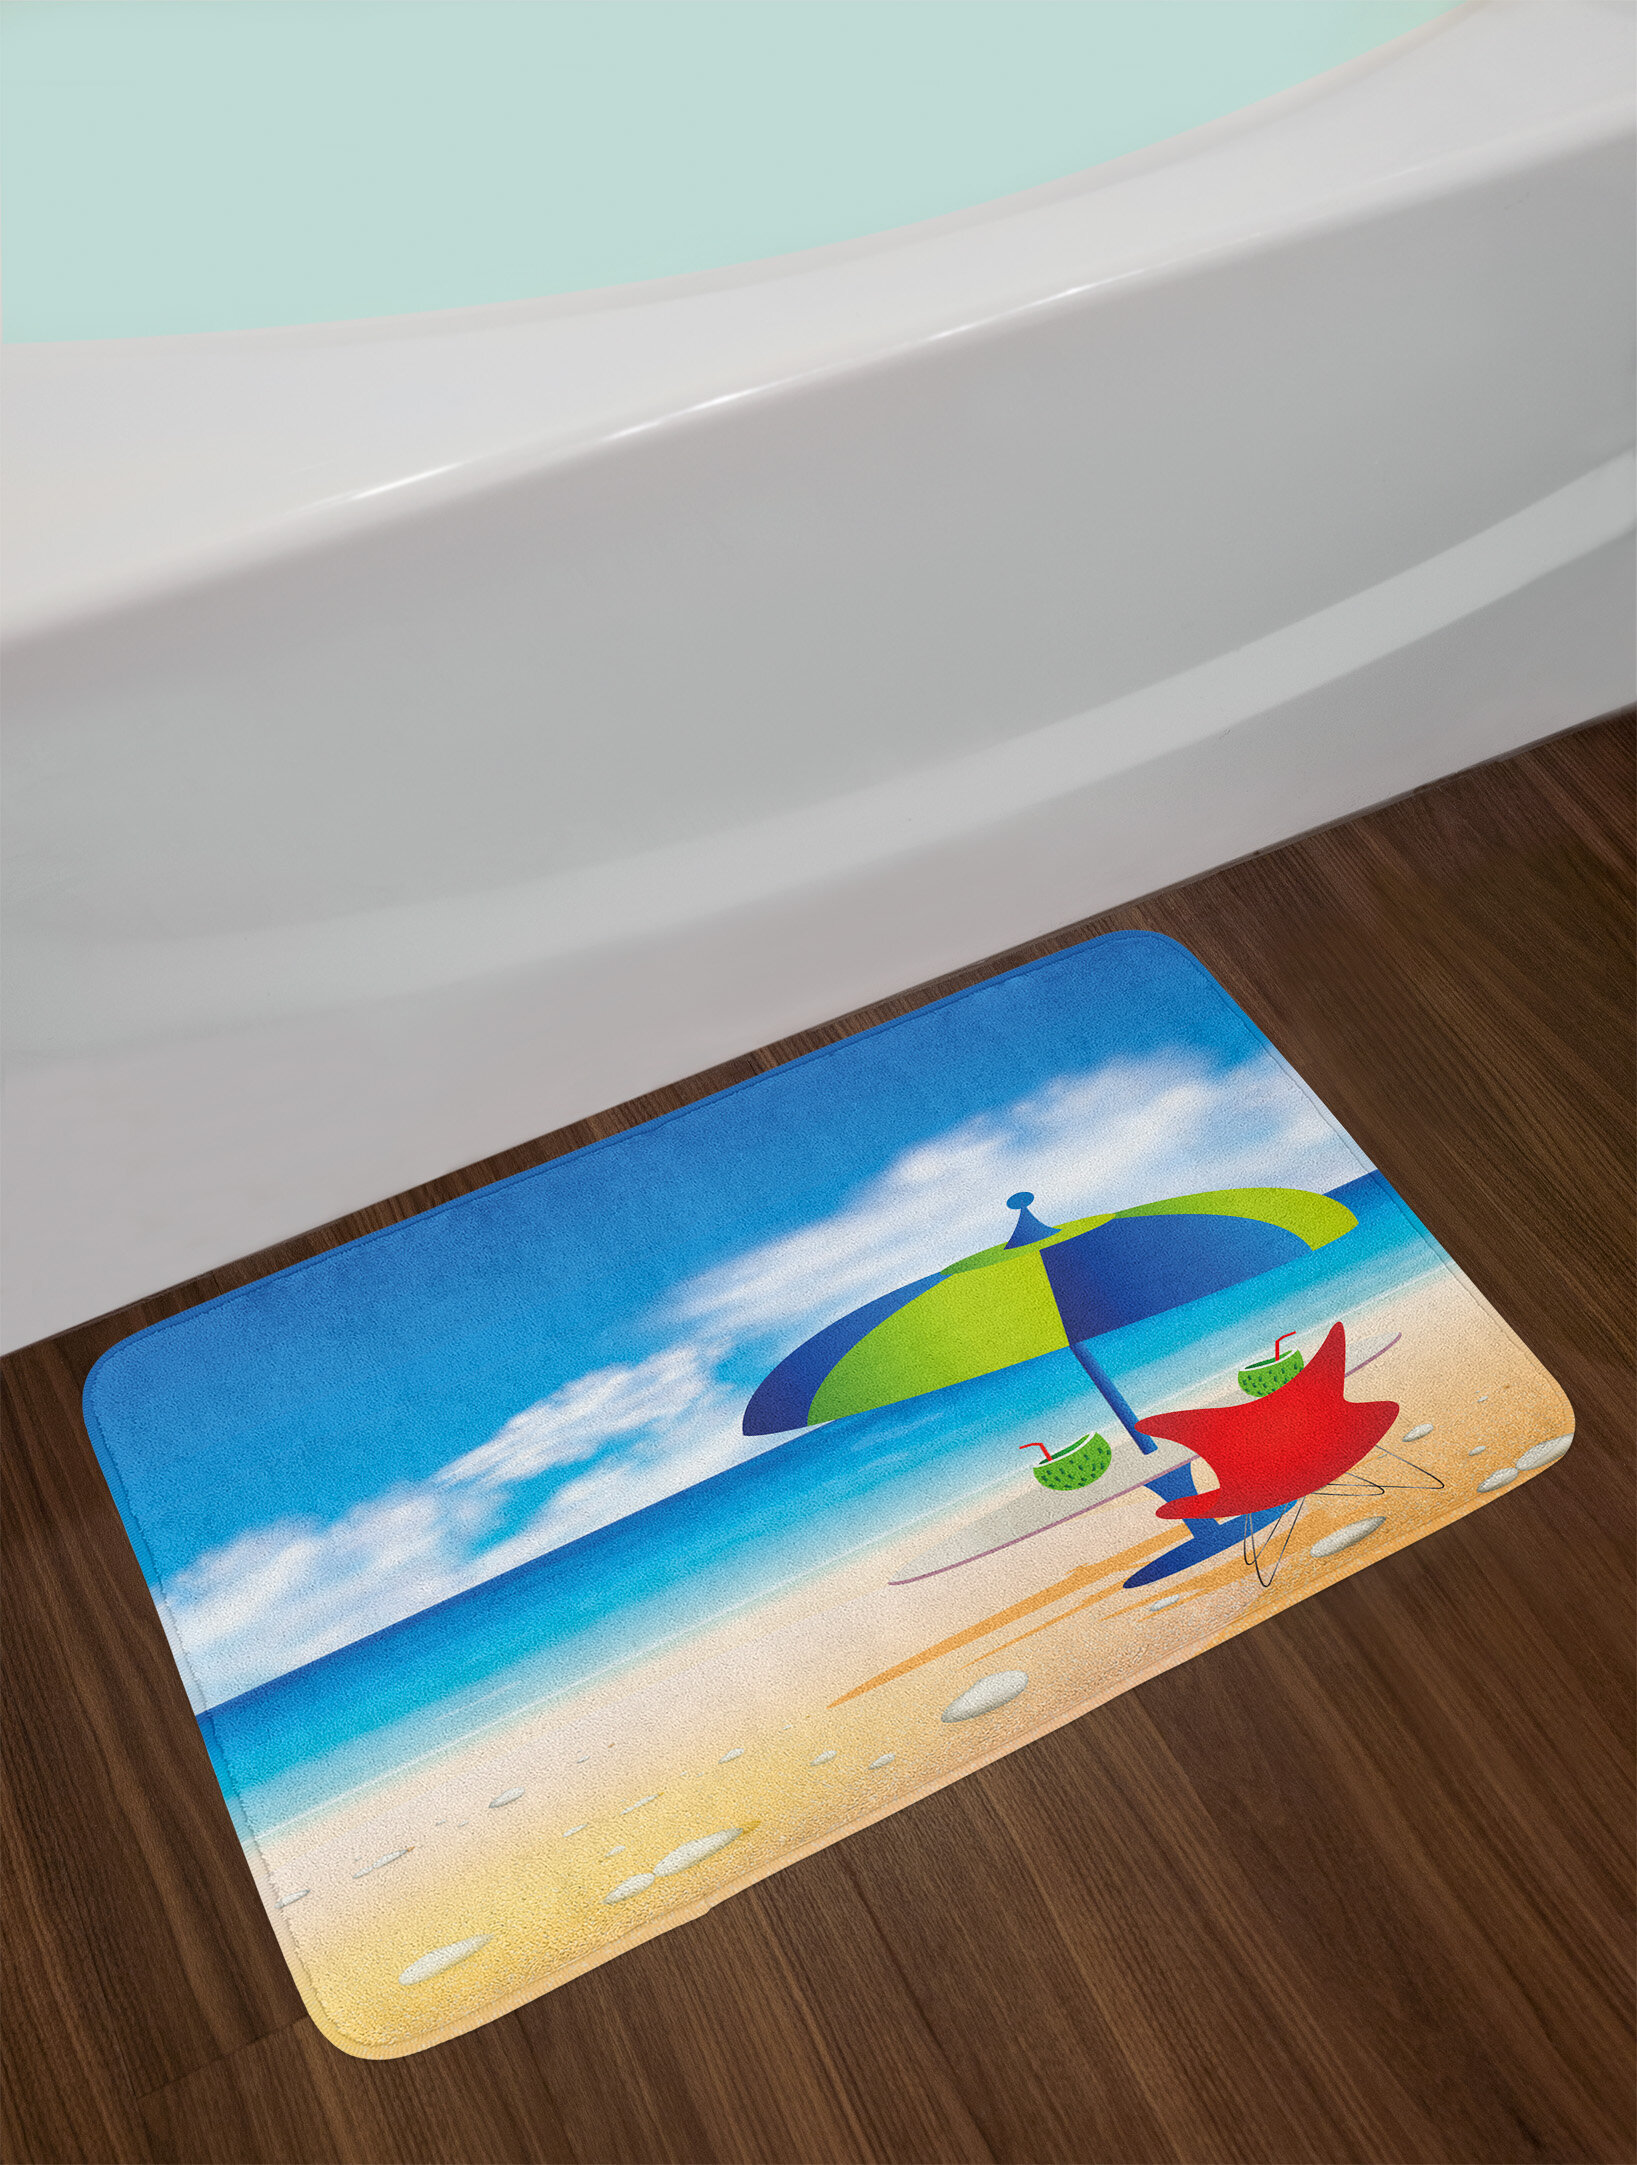 Beach Scene Bathroom Decor on butterflies bathroom decor, love bathroom decor, sexy bathroom decor, island bathroom decor, bamboo bathroom decor, car bathroom decor, rose bathroom decor, girl bathroom decor, male bathroom decor, family bathroom decor, waterfall bathroom decor, forest bathroom decor, star bathroom decor, ocean bathroom decor, flowers bathroom decor, blue bathroom decor, train bathroom decor, tropical bathroom decor, bowling bathroom decor, eagle bathroom decor,